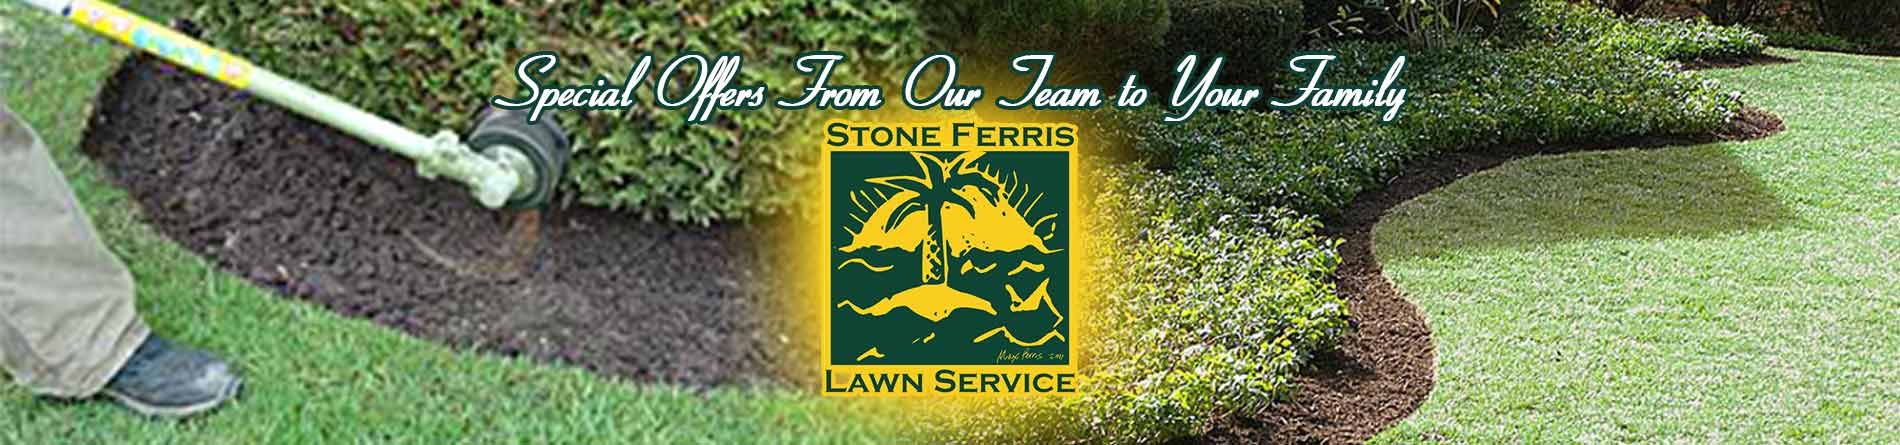 Best Value Lawn Care